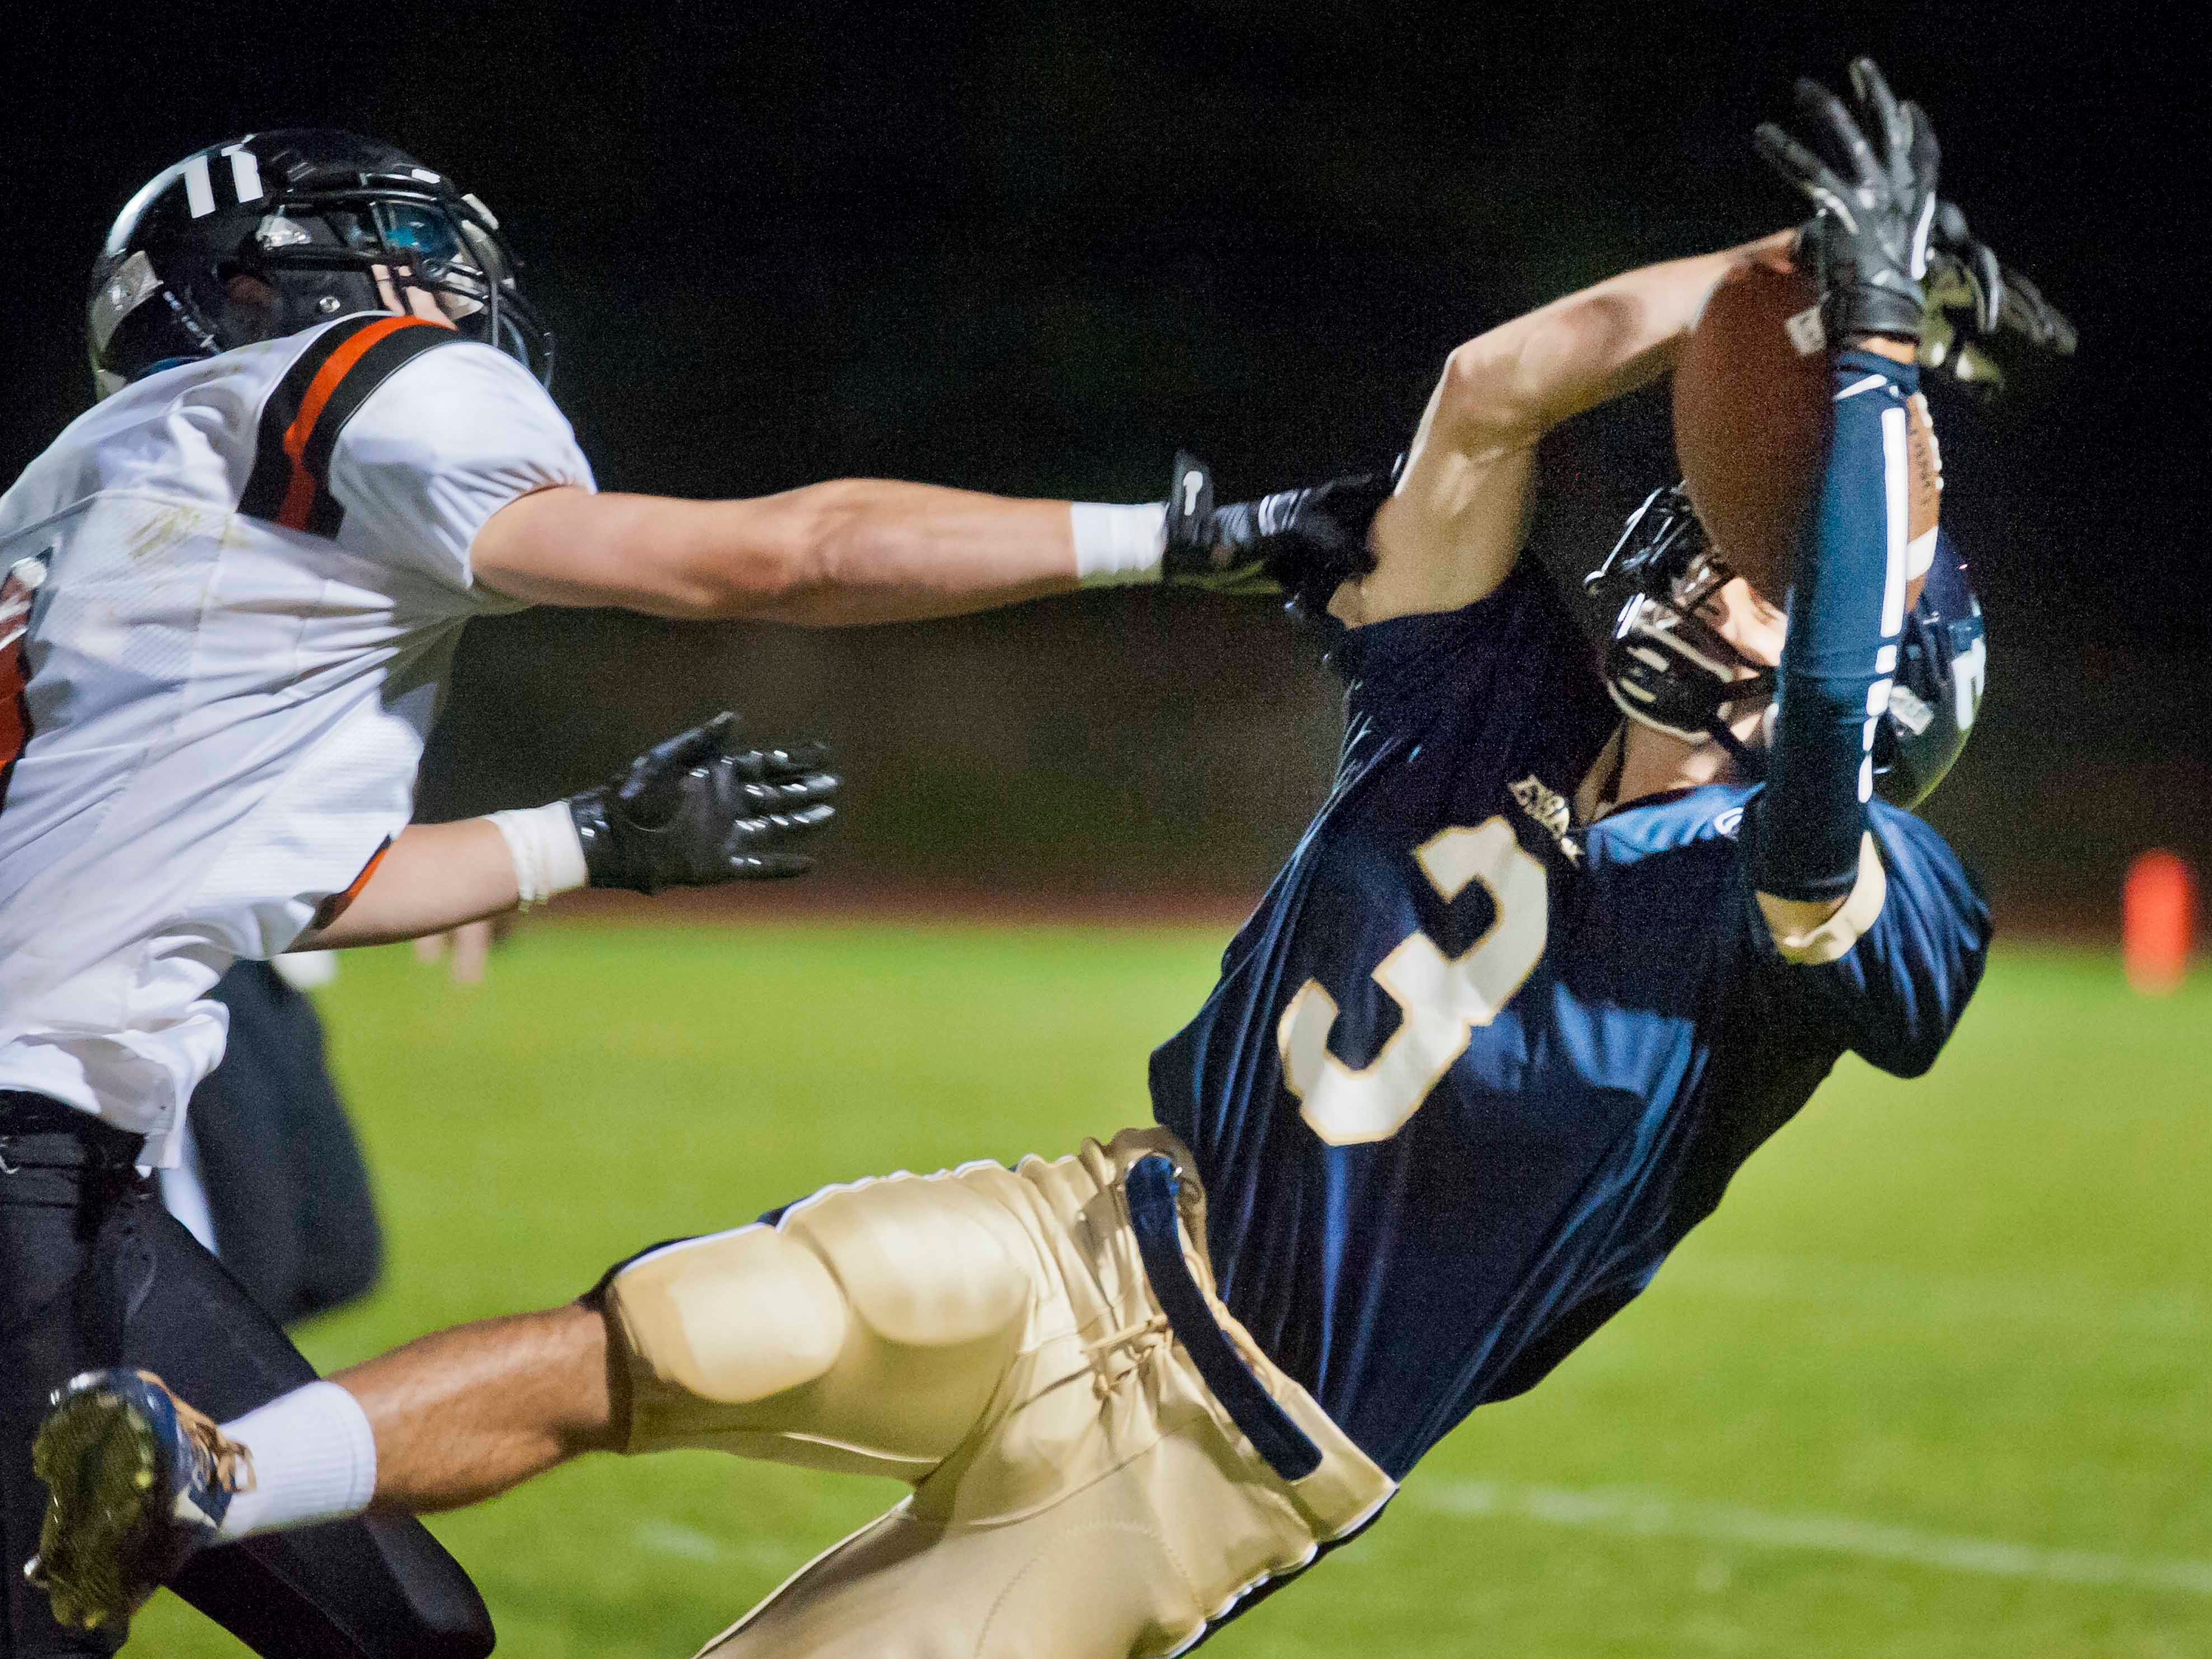 Essex's Matthew Olsen (right) can't hold onto a pass under pressure from Middlebury's Connor Quinn in Essex Junction during Week 1 of the high school football season.